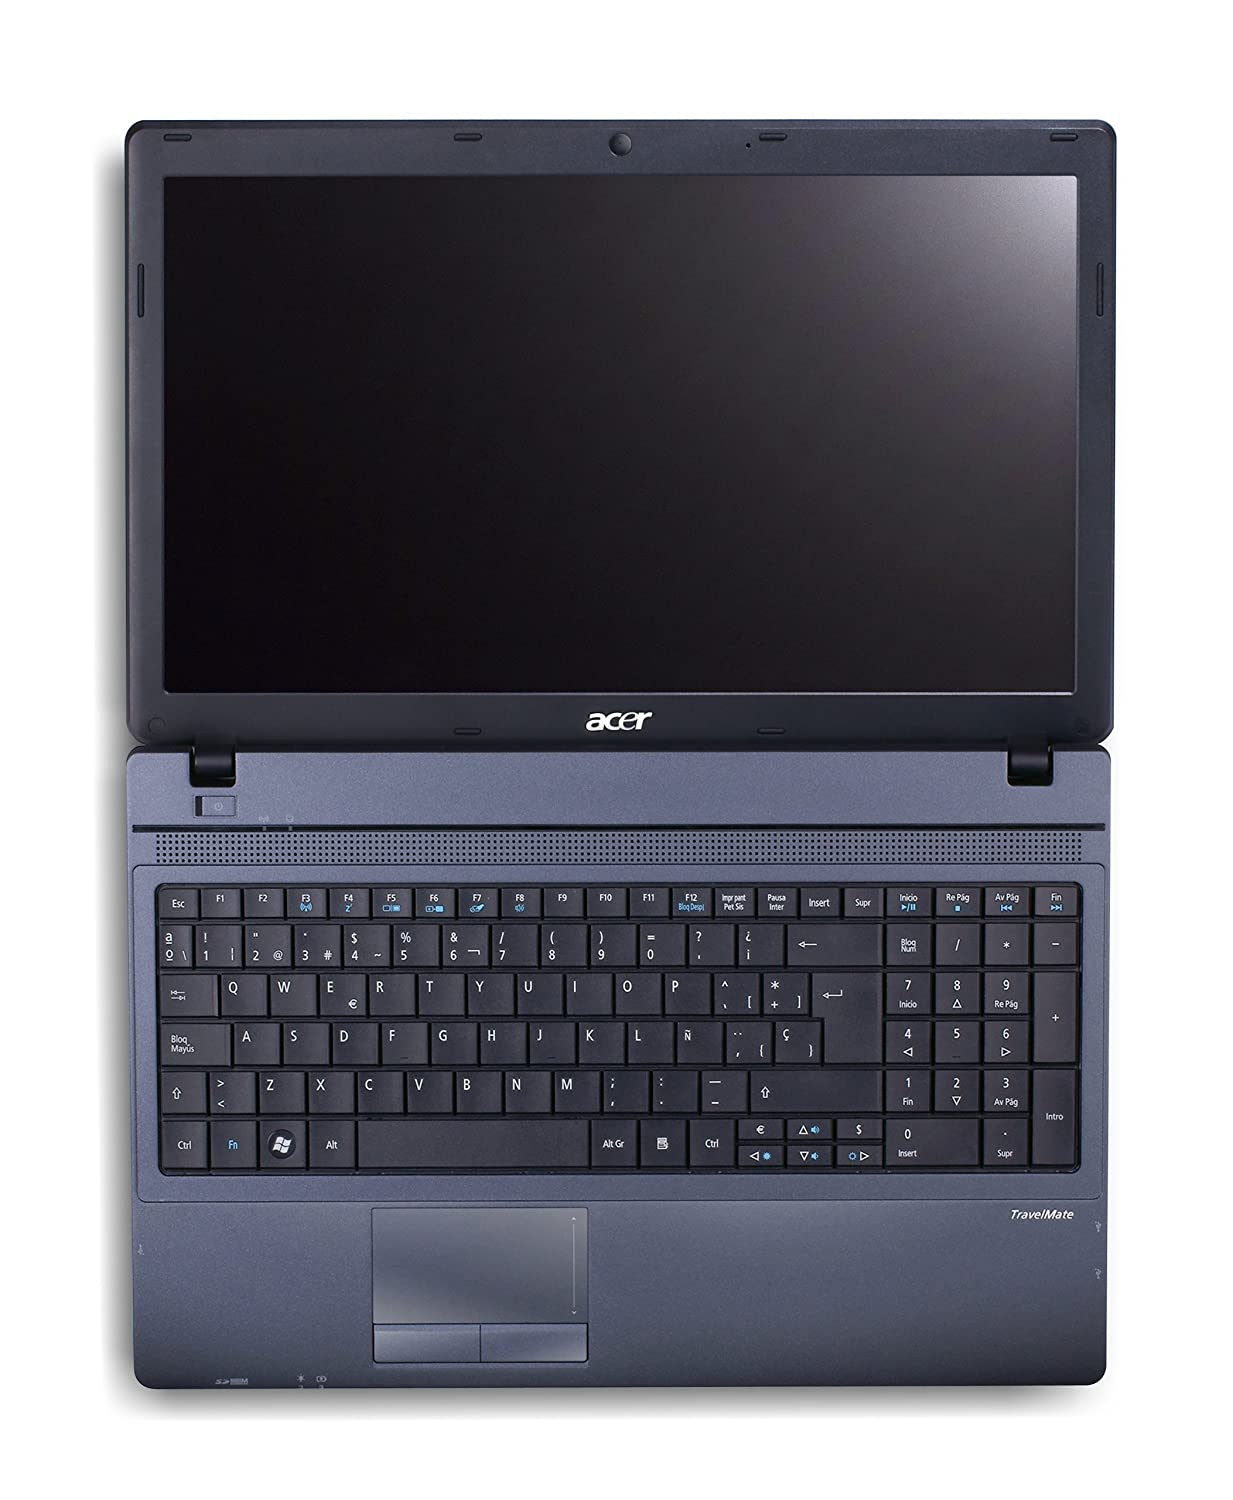 ACER TRAVELMATE 5335 DRIVERS FOR WINDOWS XP